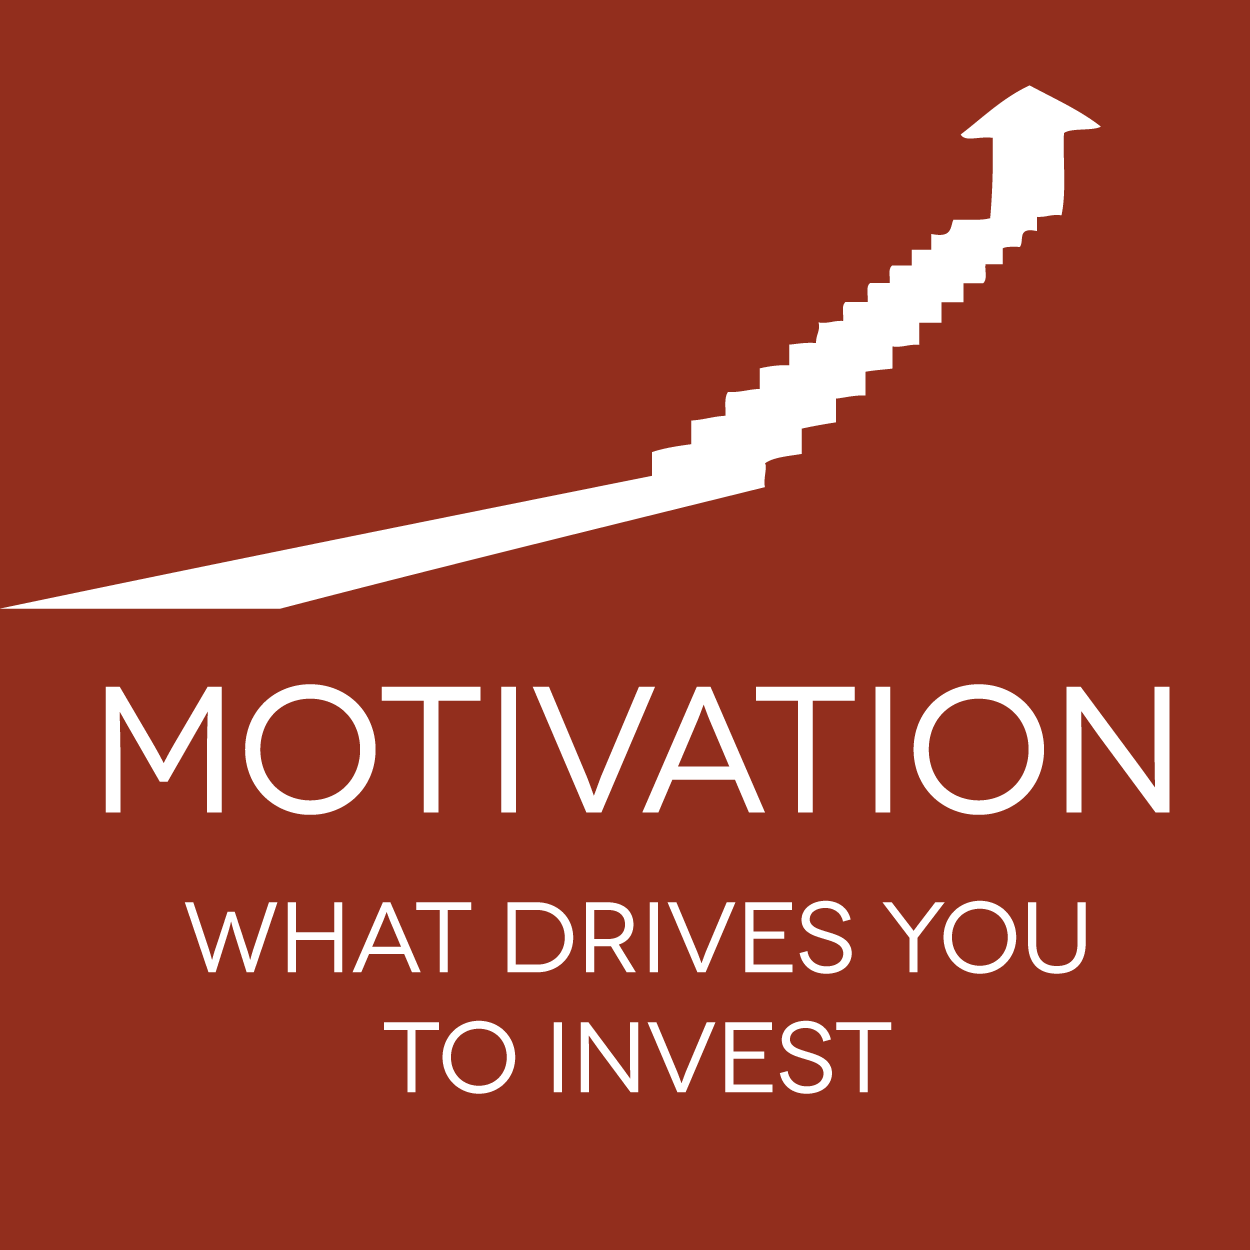 Motivation: Ever Wonder Why People Invest?